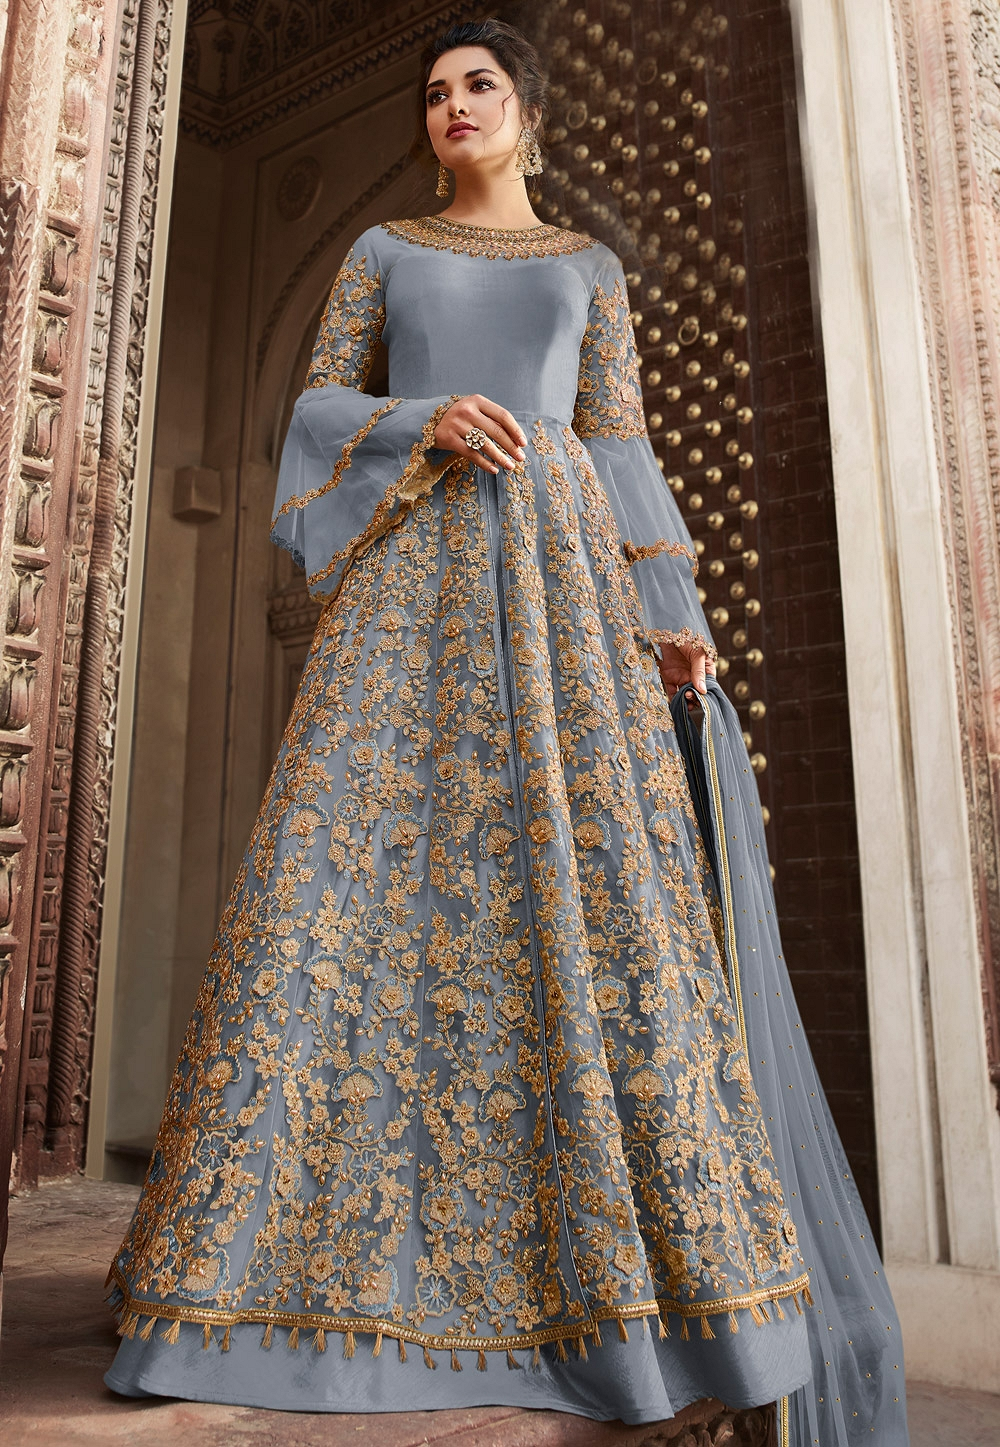 Light Grey Silk Heavy Embroidered Floor Length Anarkali Wedding Suit - 5306C